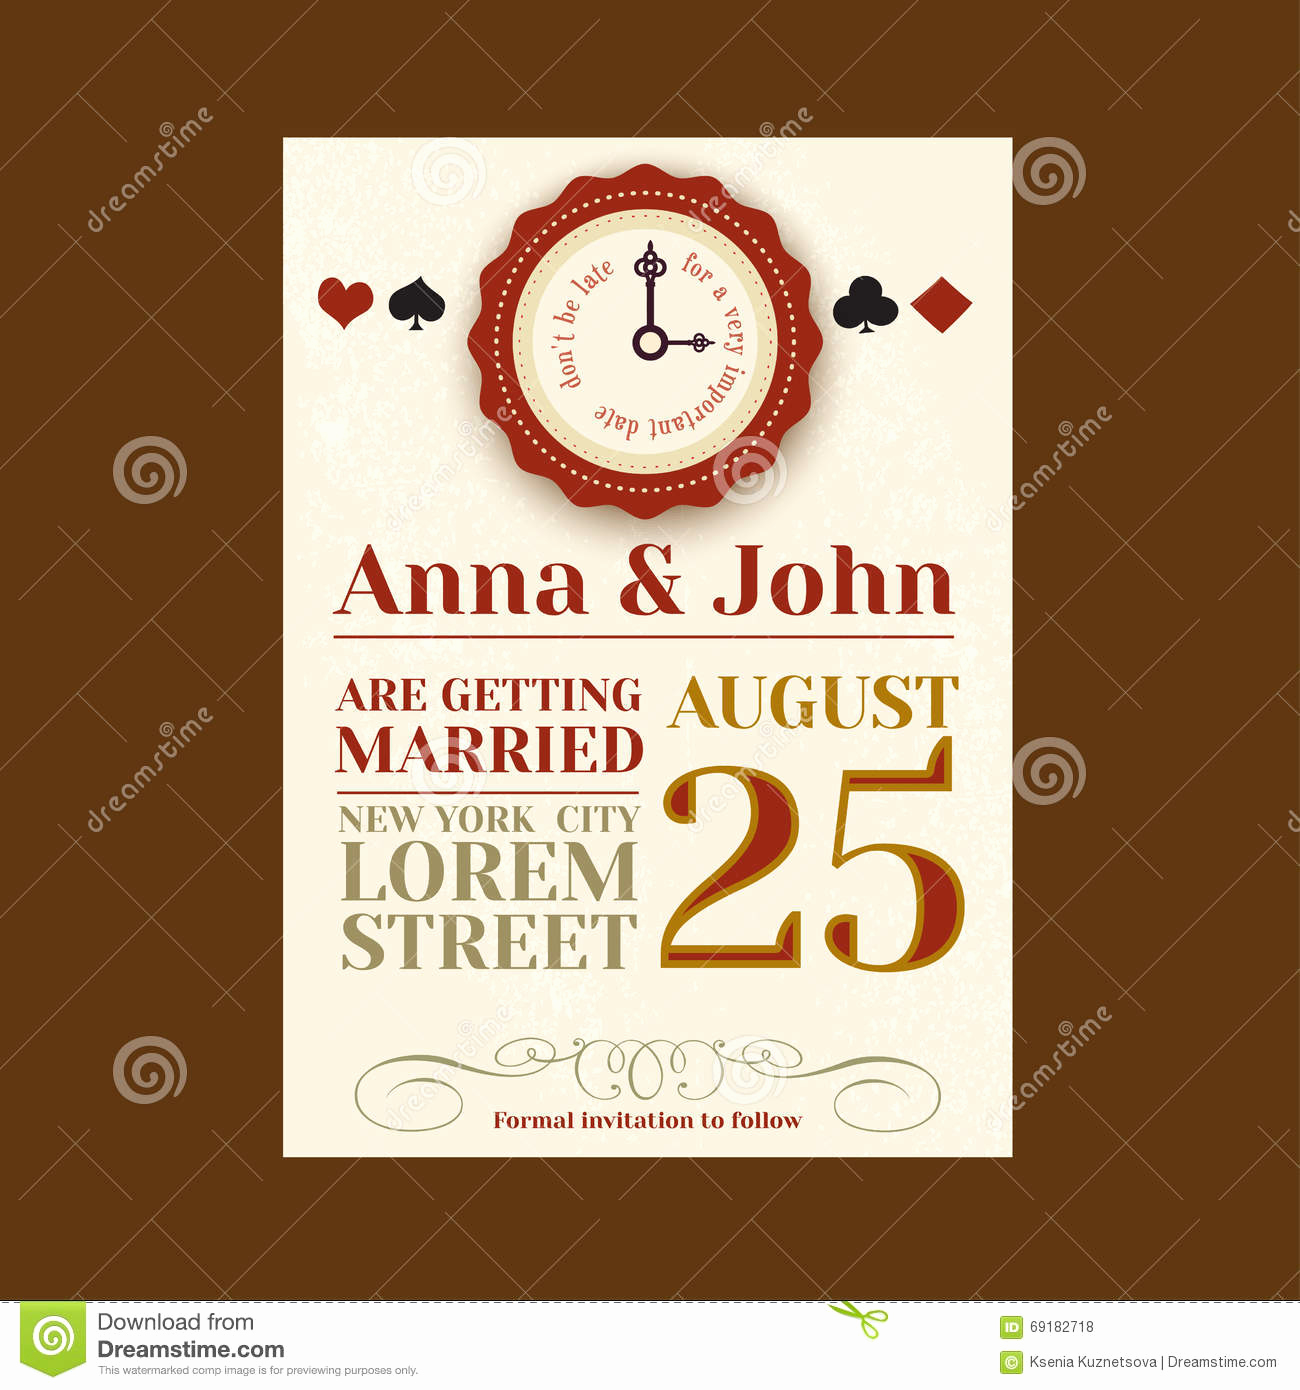 Playing Card Invitation Template Free Best Of Alice In Wonderland Save the Date Card Vintage Invitation